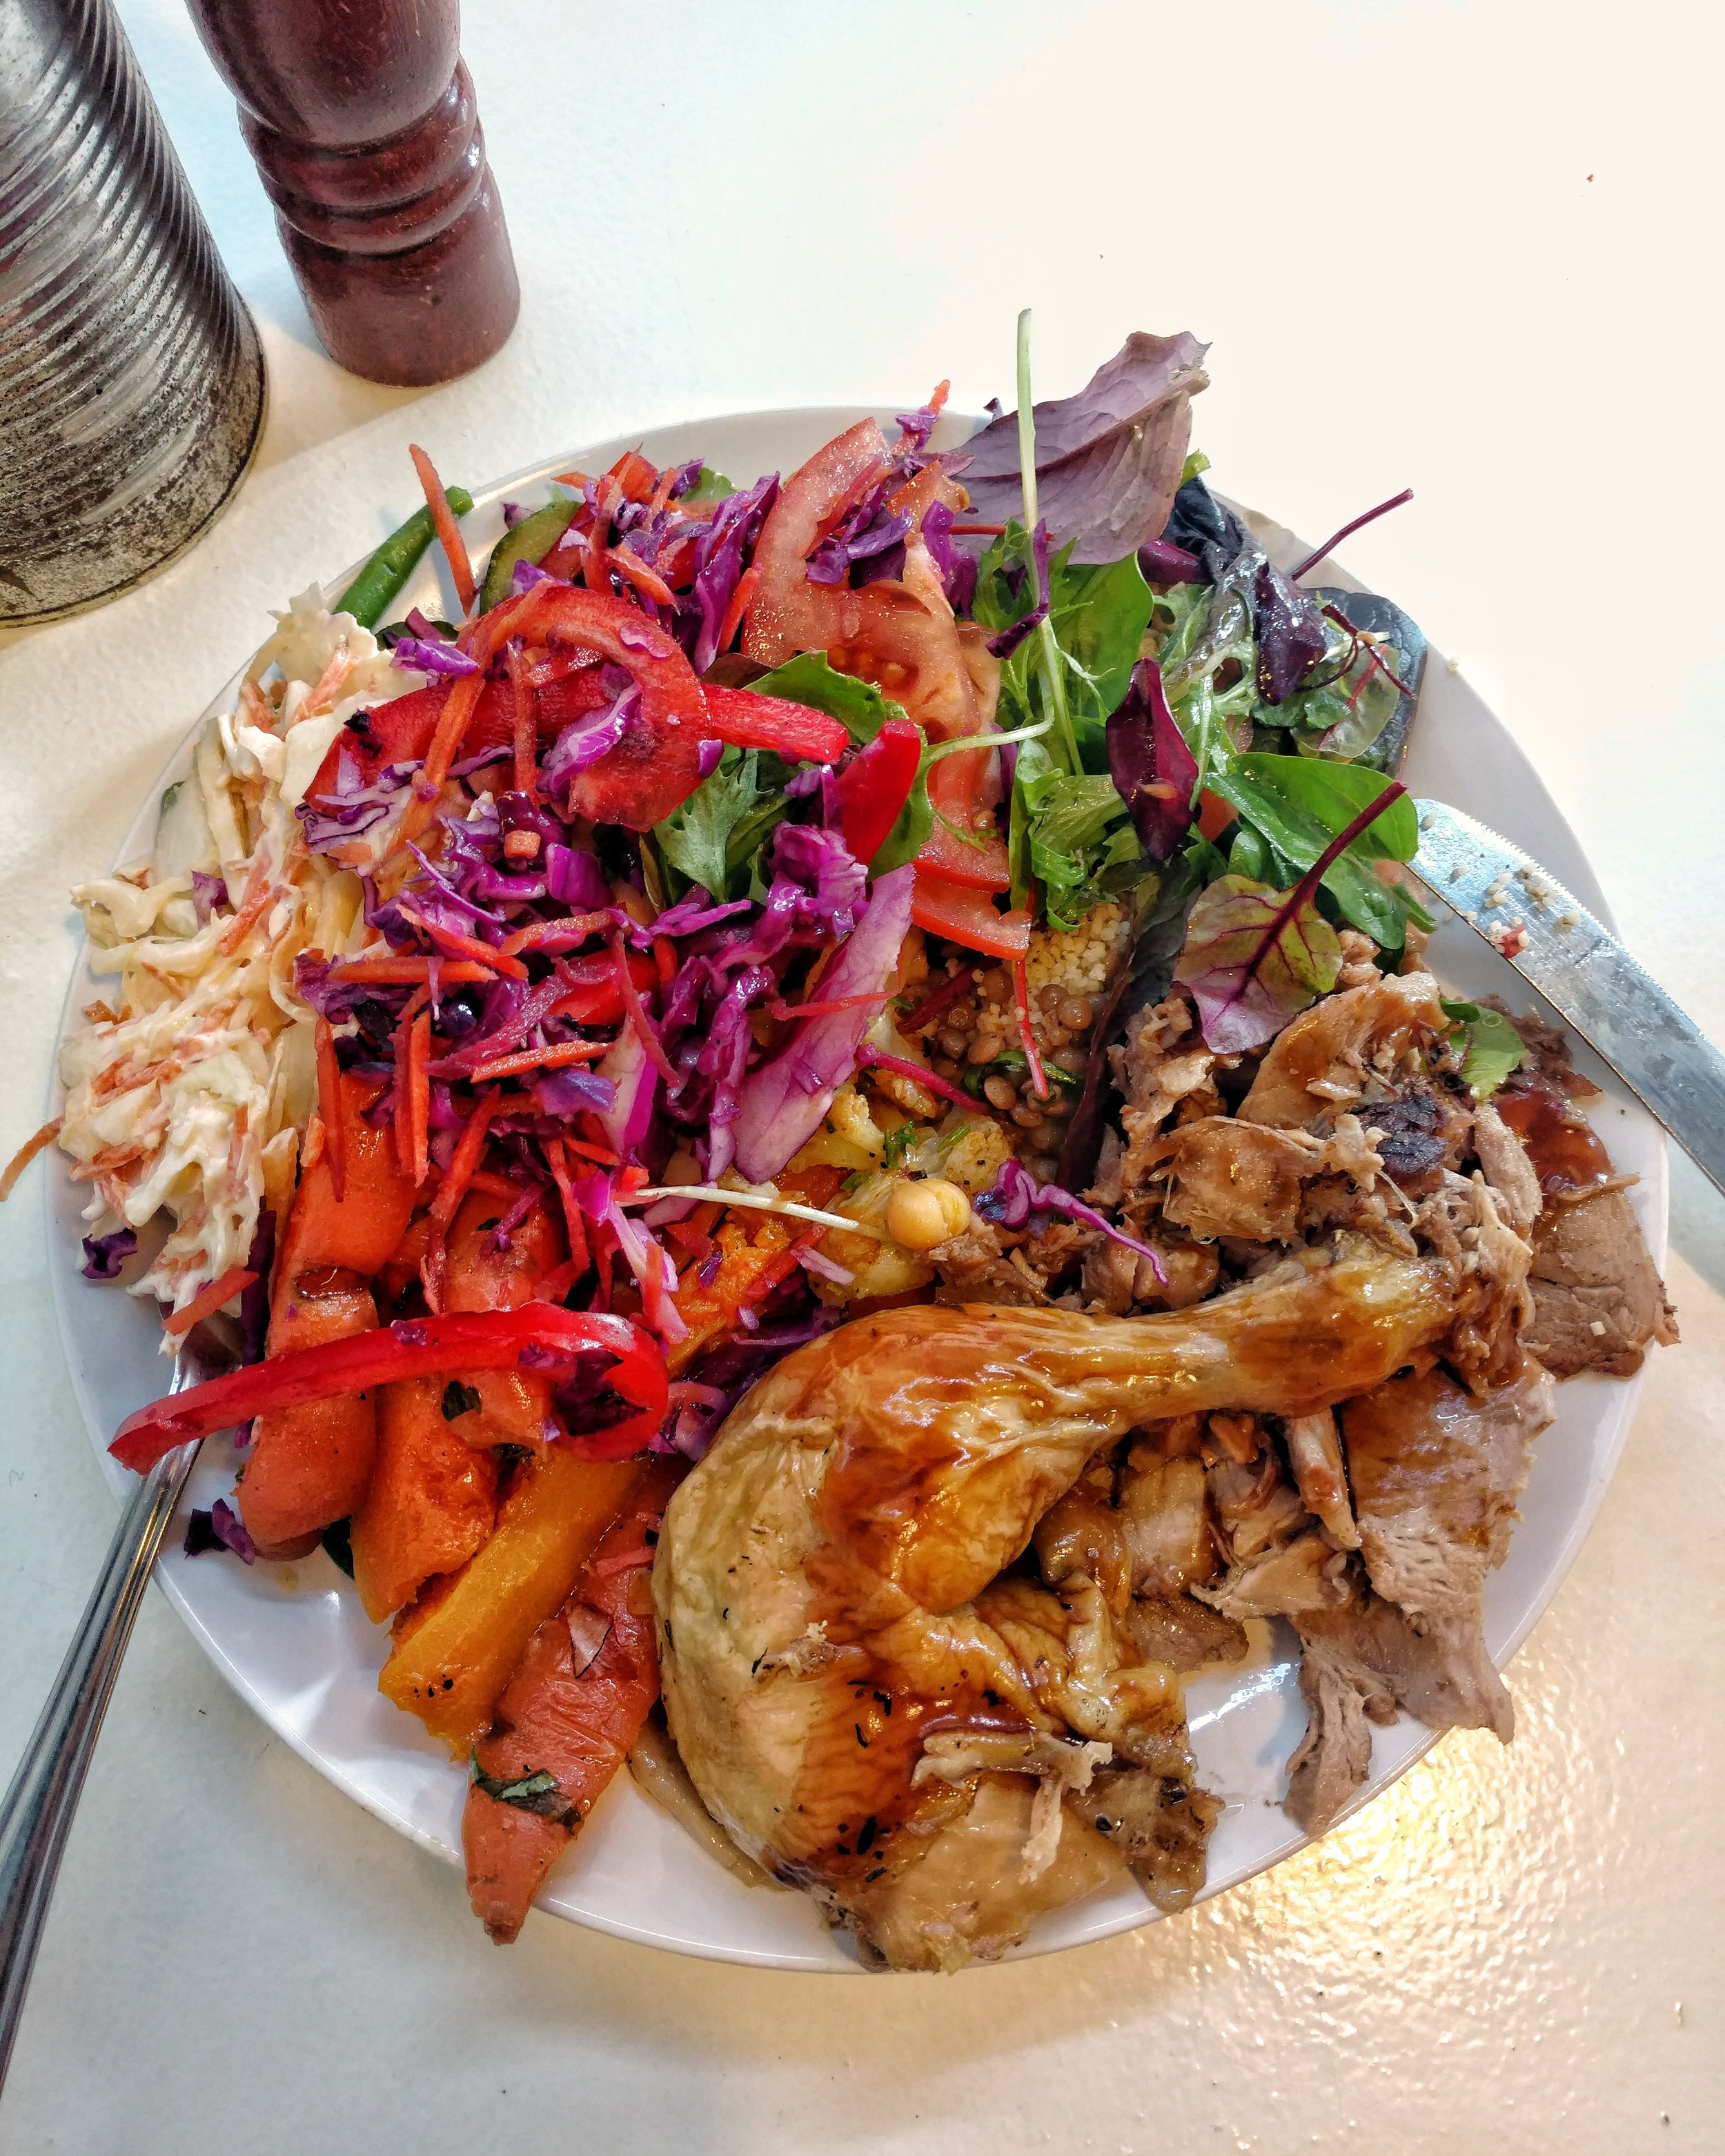 large plate of roast meats and salads, The Food Shop Kitchen